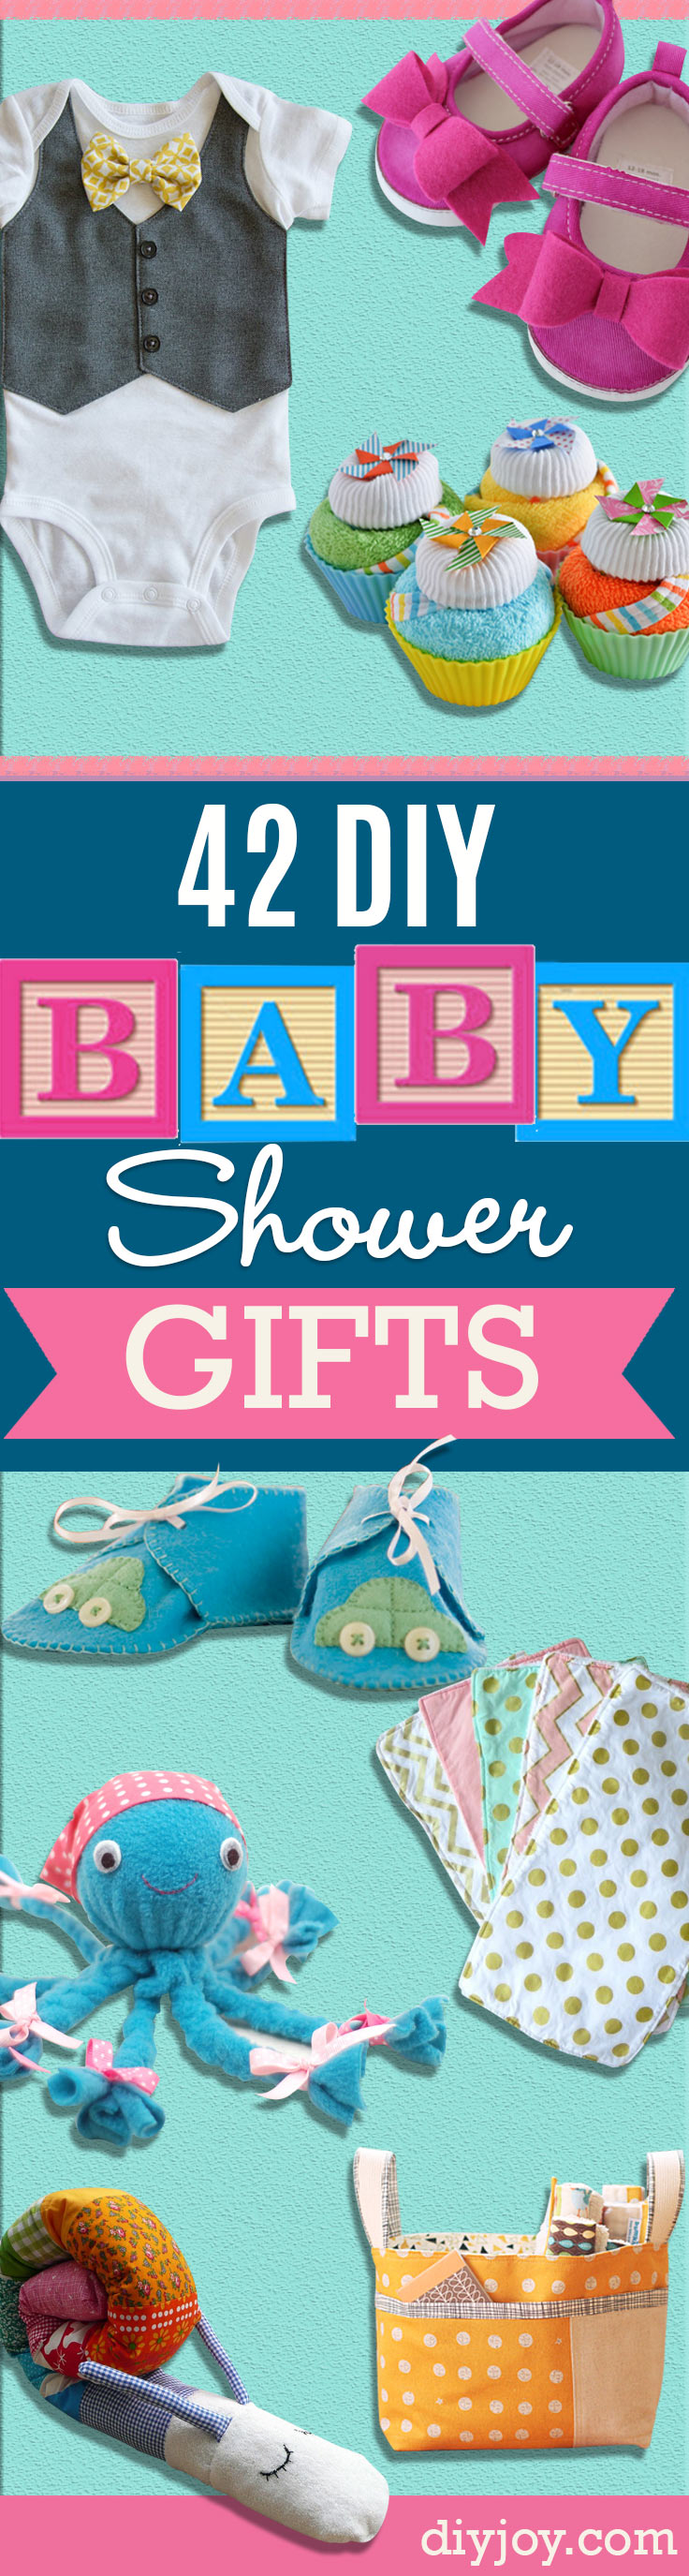 Best DIY Baby Shower Gifts -  Homemade Baby Shower Presents and Creative, Cheap Gift Ideas for Boys and Girls - Unique Gifts for the Mom and Dad to Be - Blankets, Baskets, Burp Cloths and Easy No Sew Projects http://diyjoy.com/diy-baby-shower-gifts